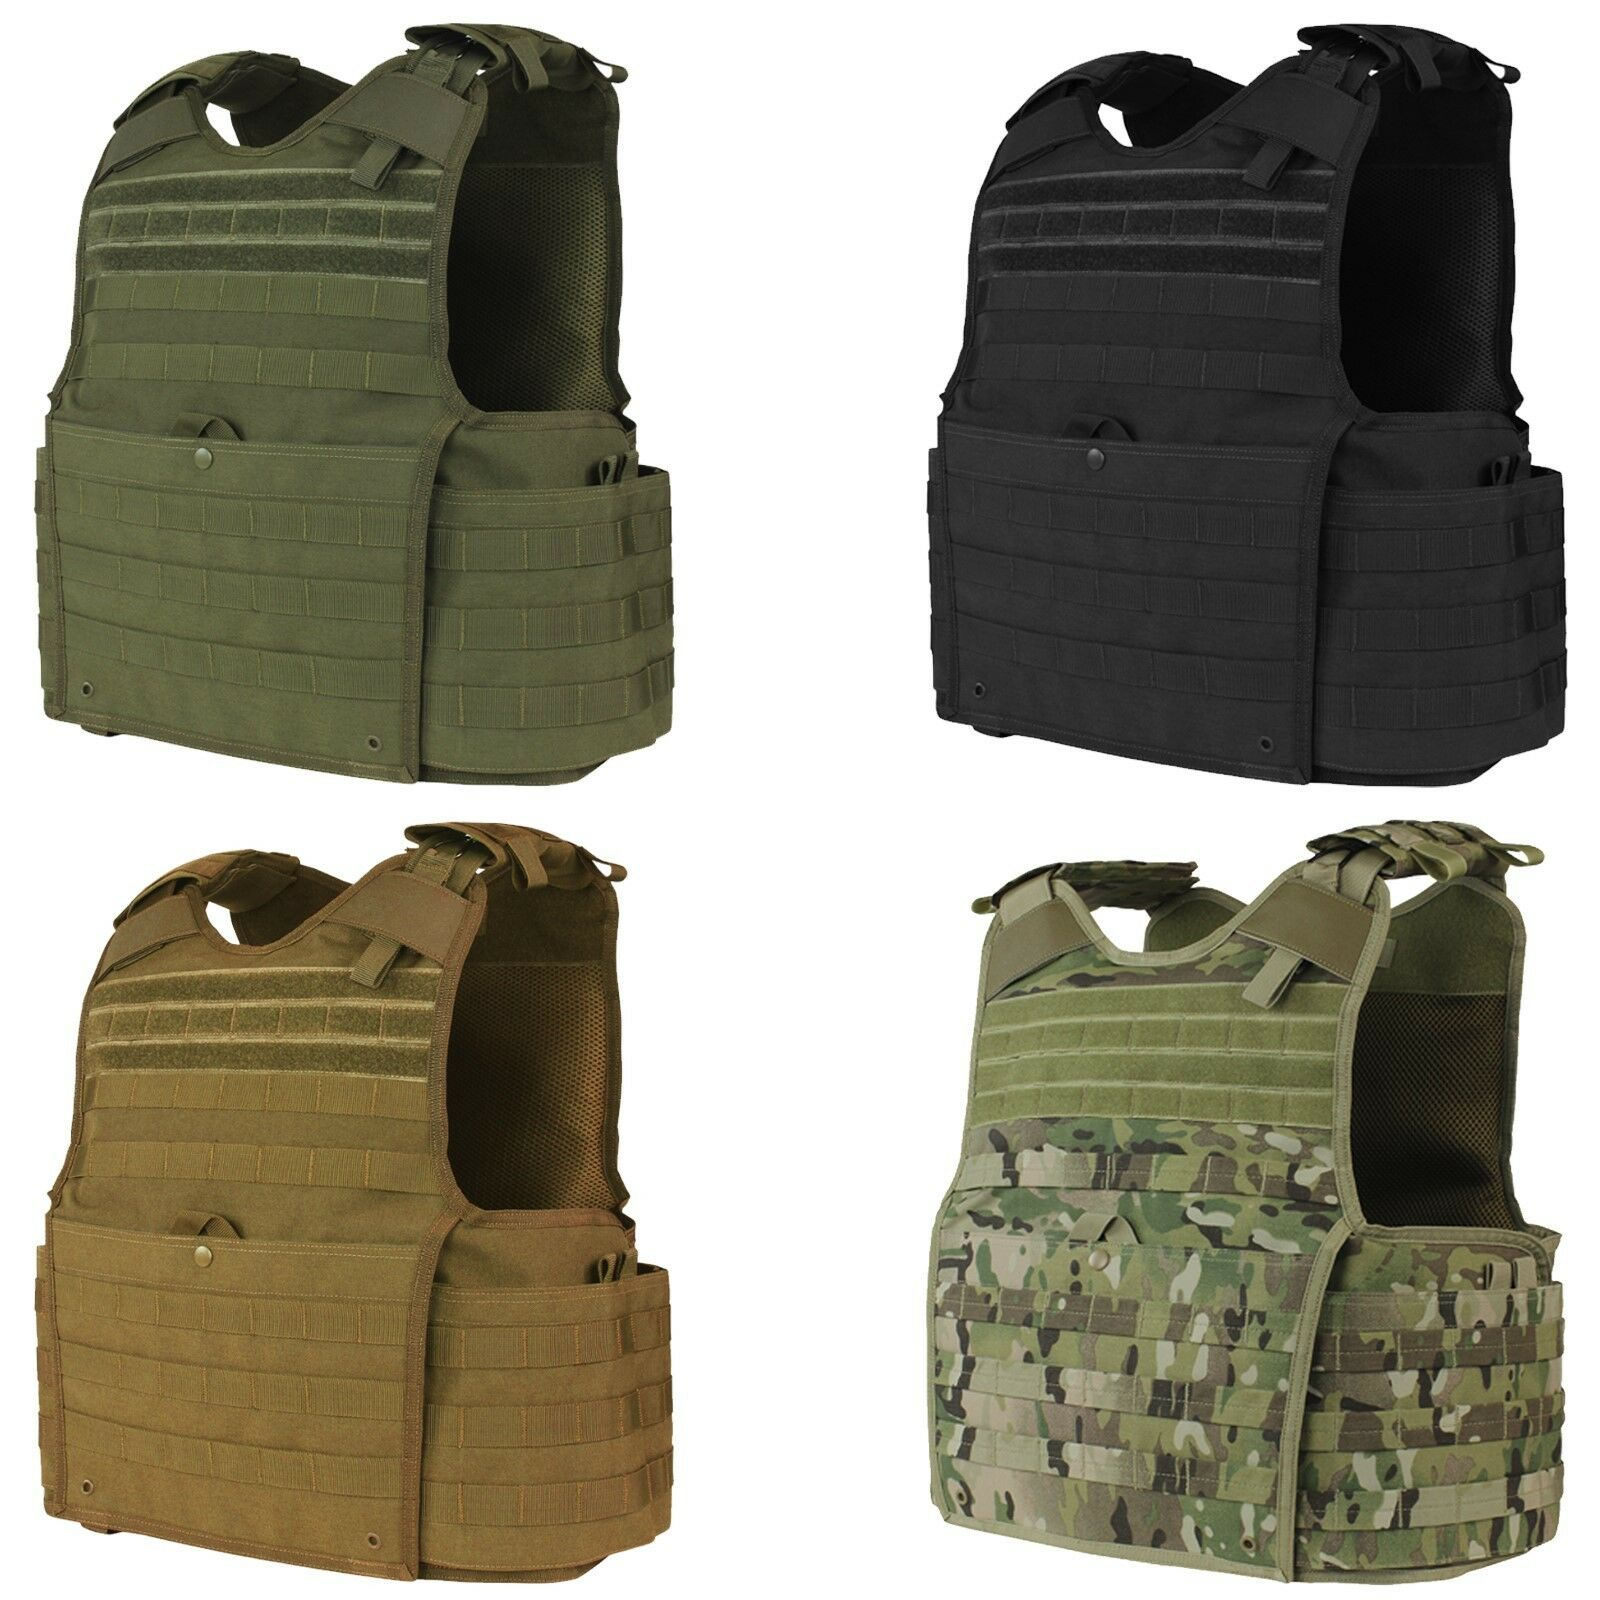 Condor  201147 Tactical Releasable MOLLE PALS BALCS SPEAR Enforcer Plate Carrier  save on clearance